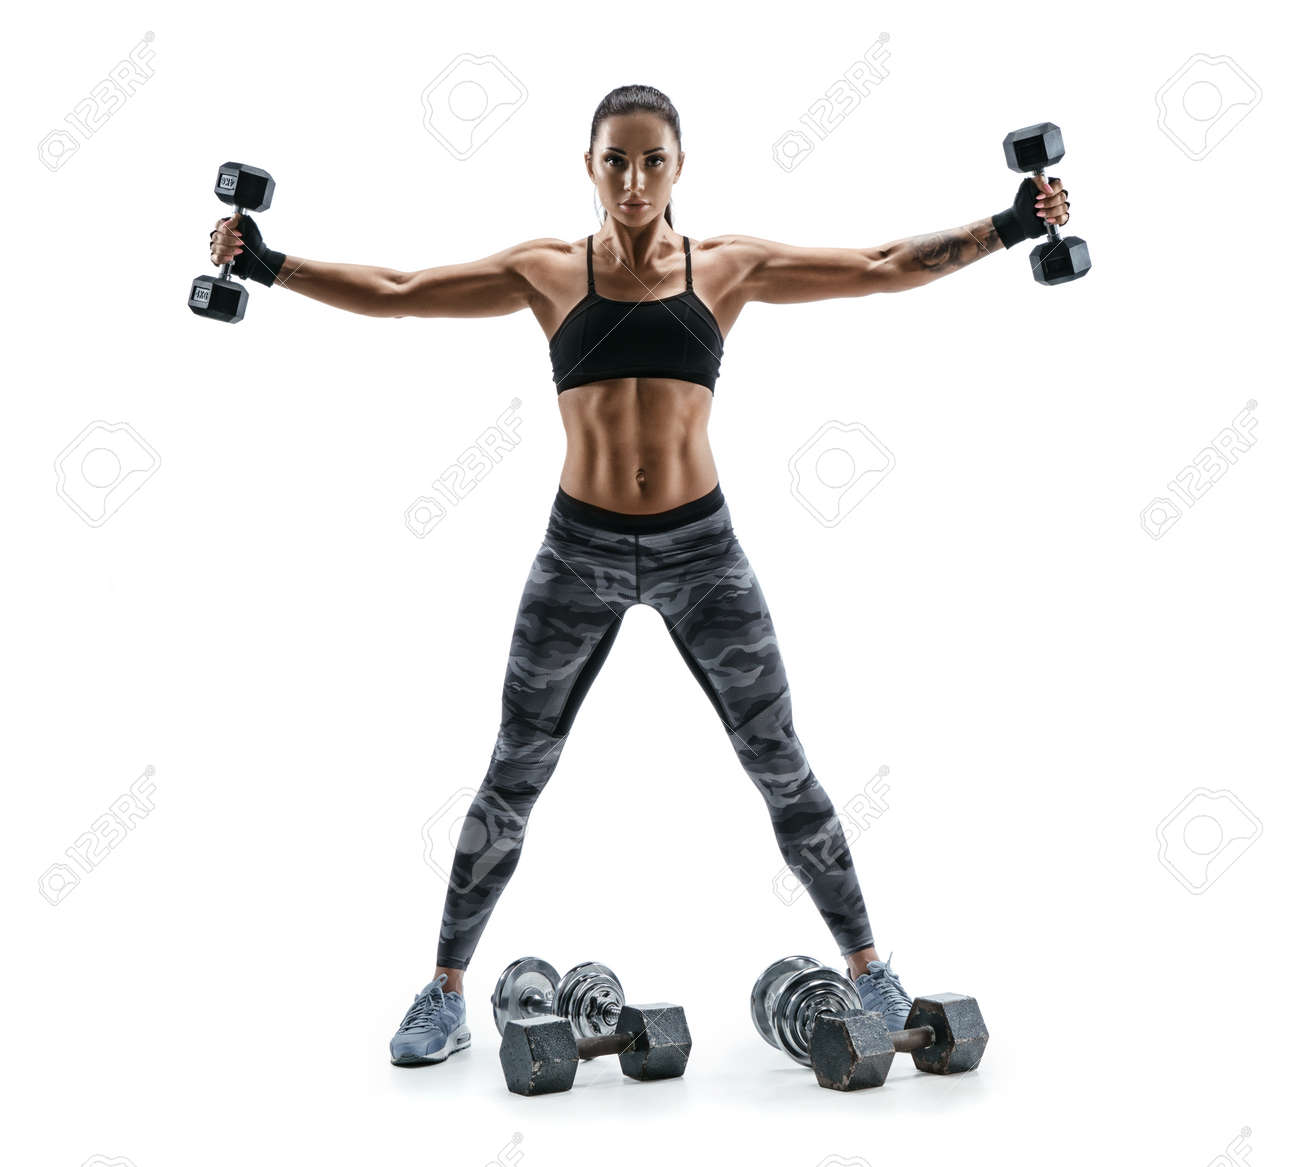 Fitness model exercising with dumbbells in both hands. Photo of muscular woman isolated on white background. Strength and motivation. - 78518372